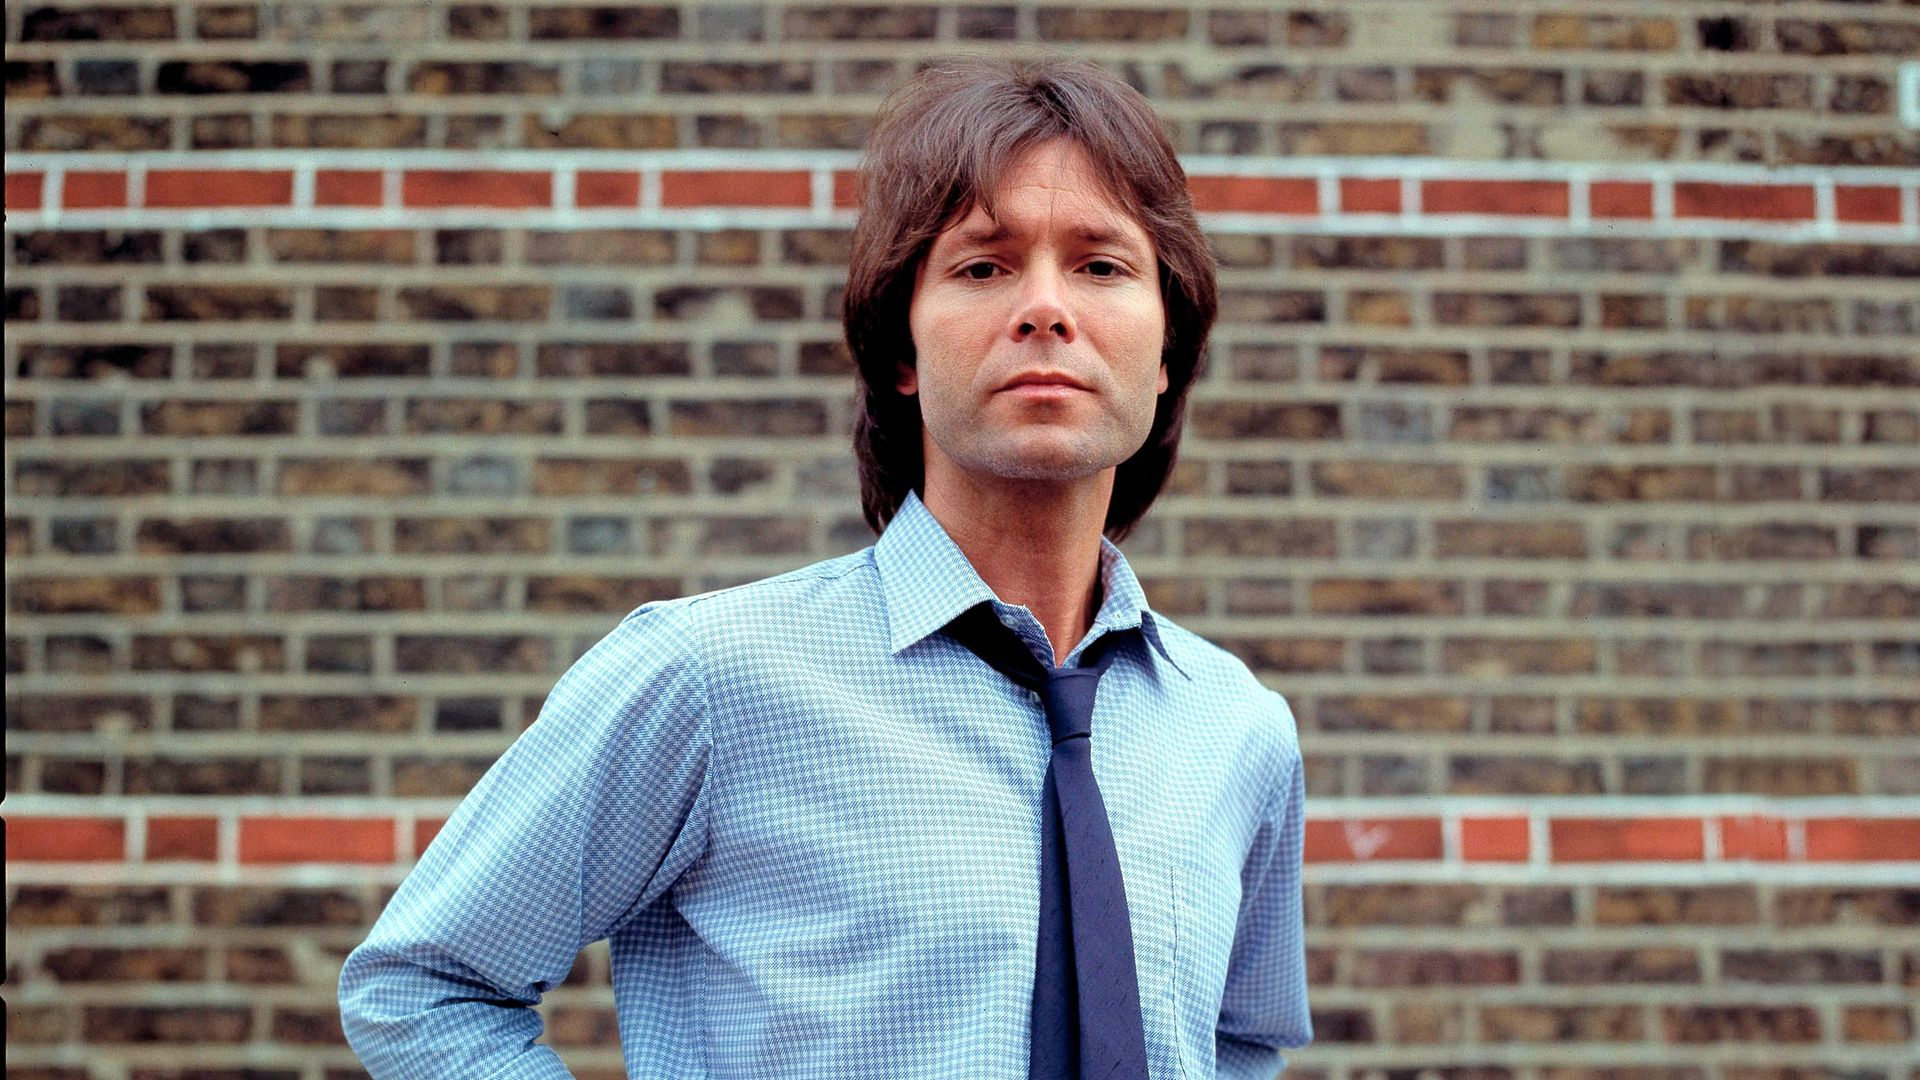 A portrait of Cliff Richard in 1982 - Credit: Getty Images